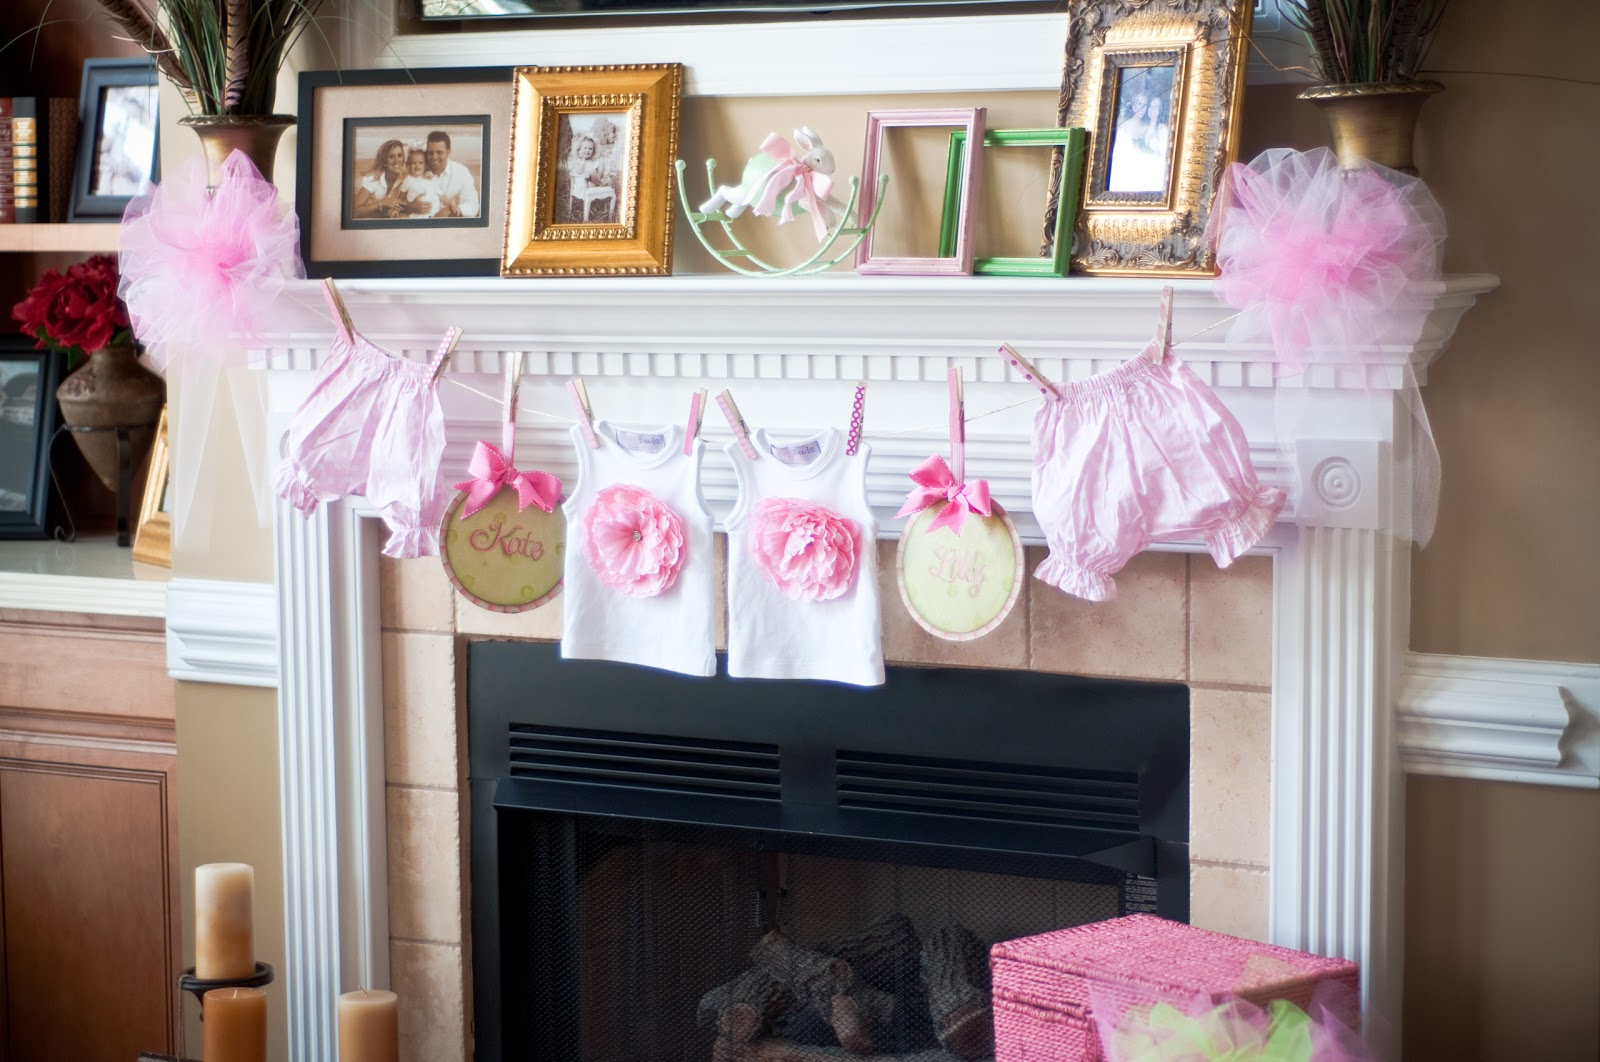 paws re thread baby shower decorating ideas clothes line wishin